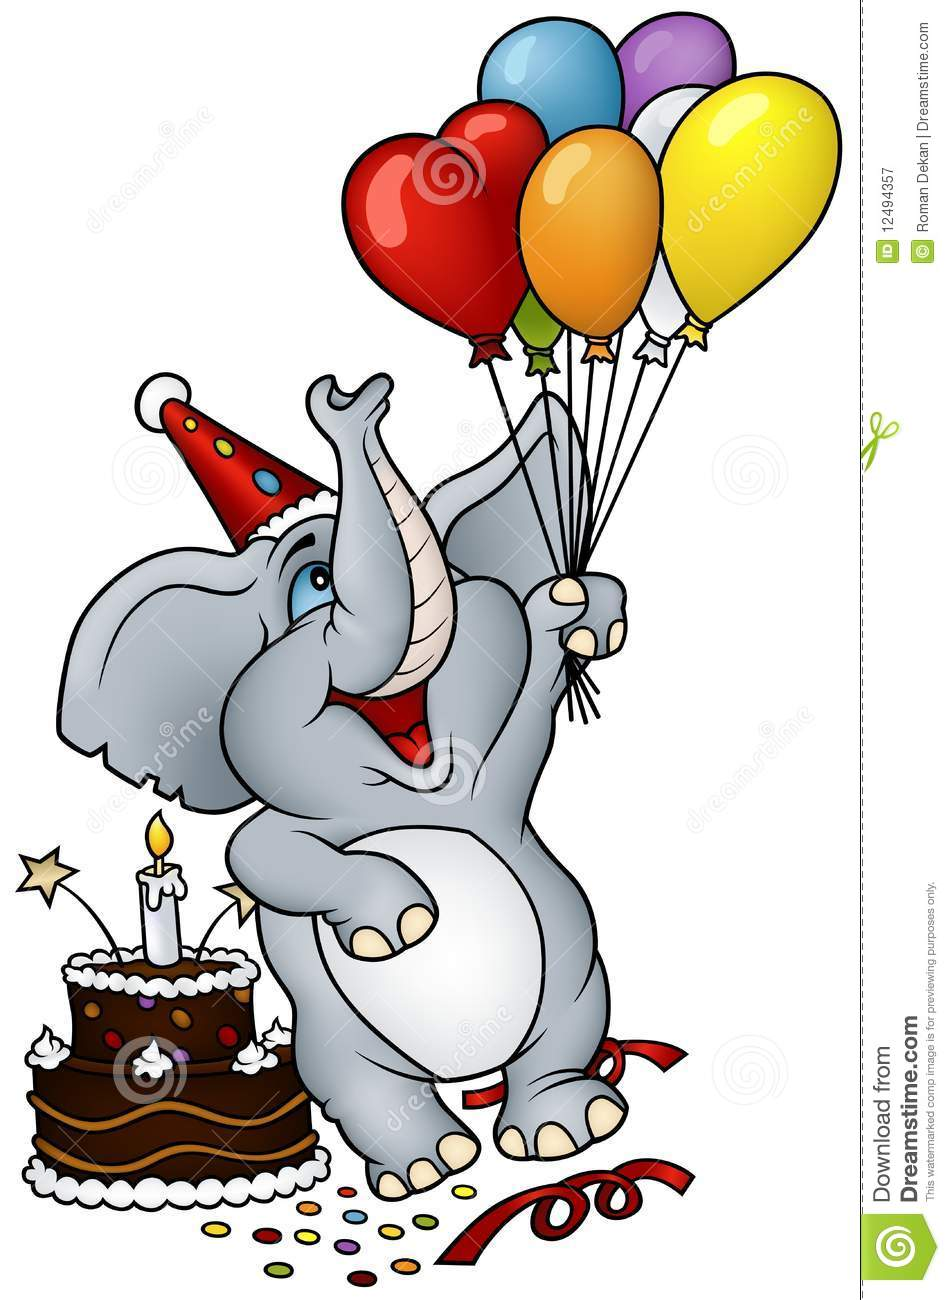 Elephant happy birthday stock vector illustration of for Geburtstagsbilder 18